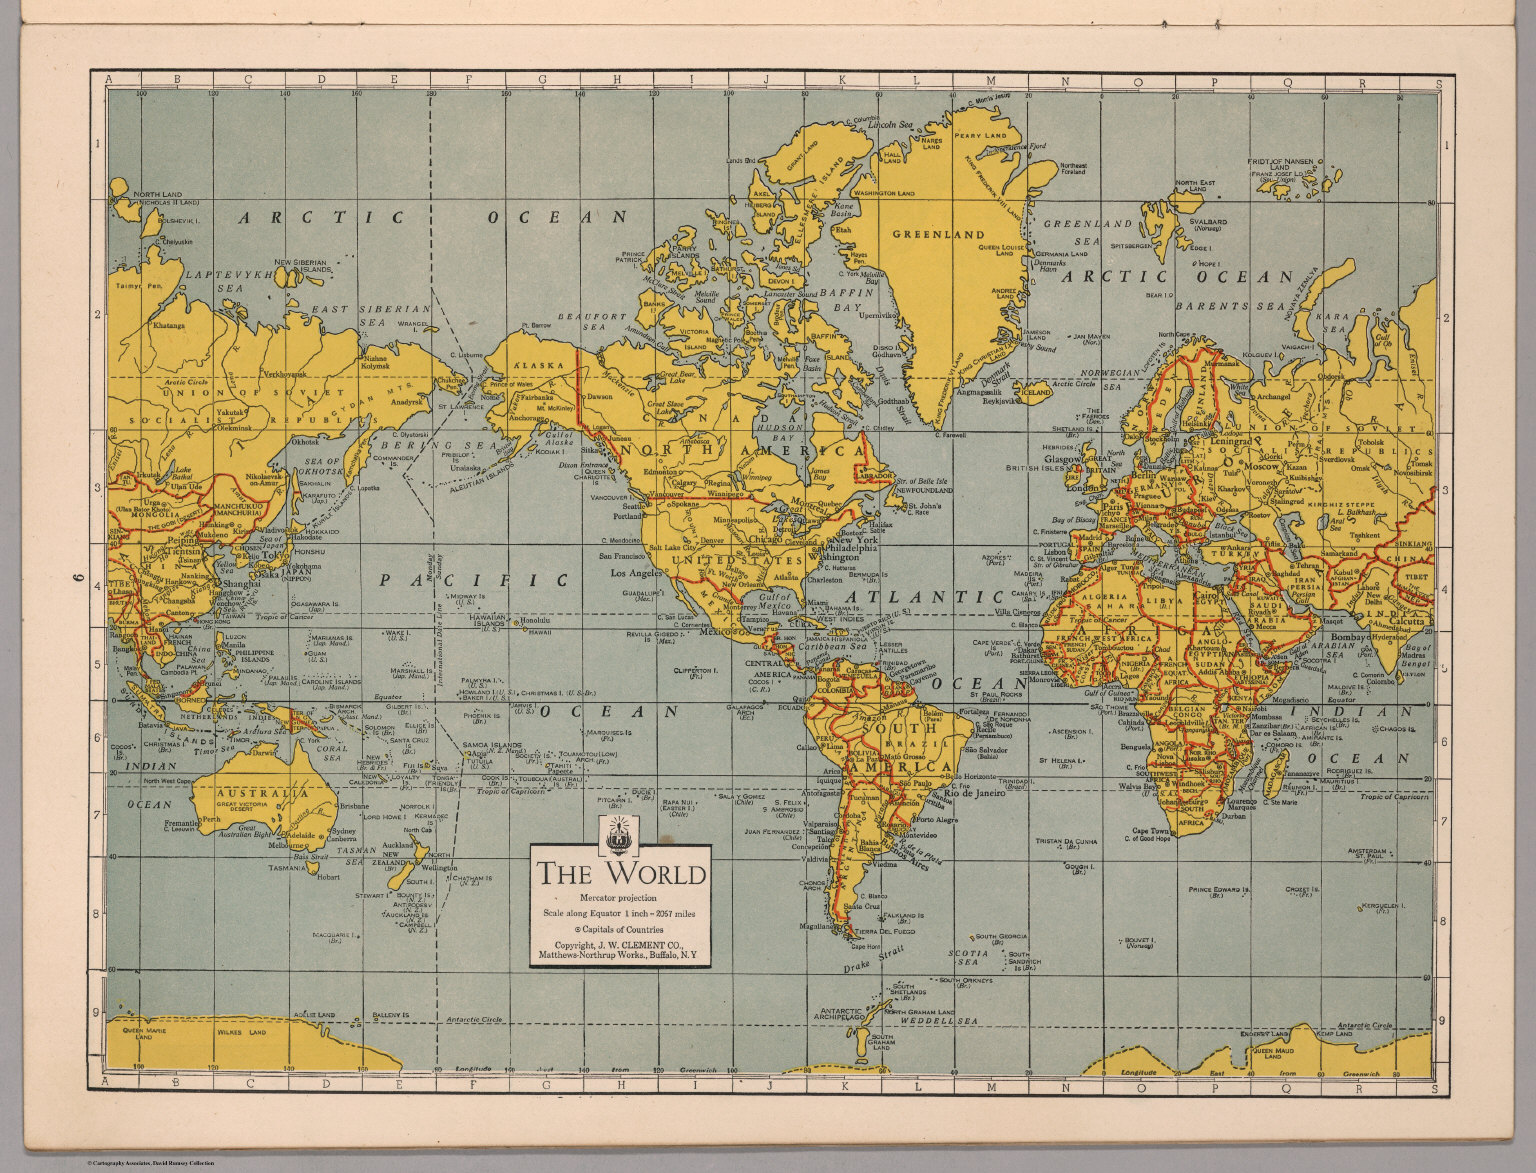 High Resolution World Map With Countries.Pictures Of World Map With Countries High Resolution Rock Cafe